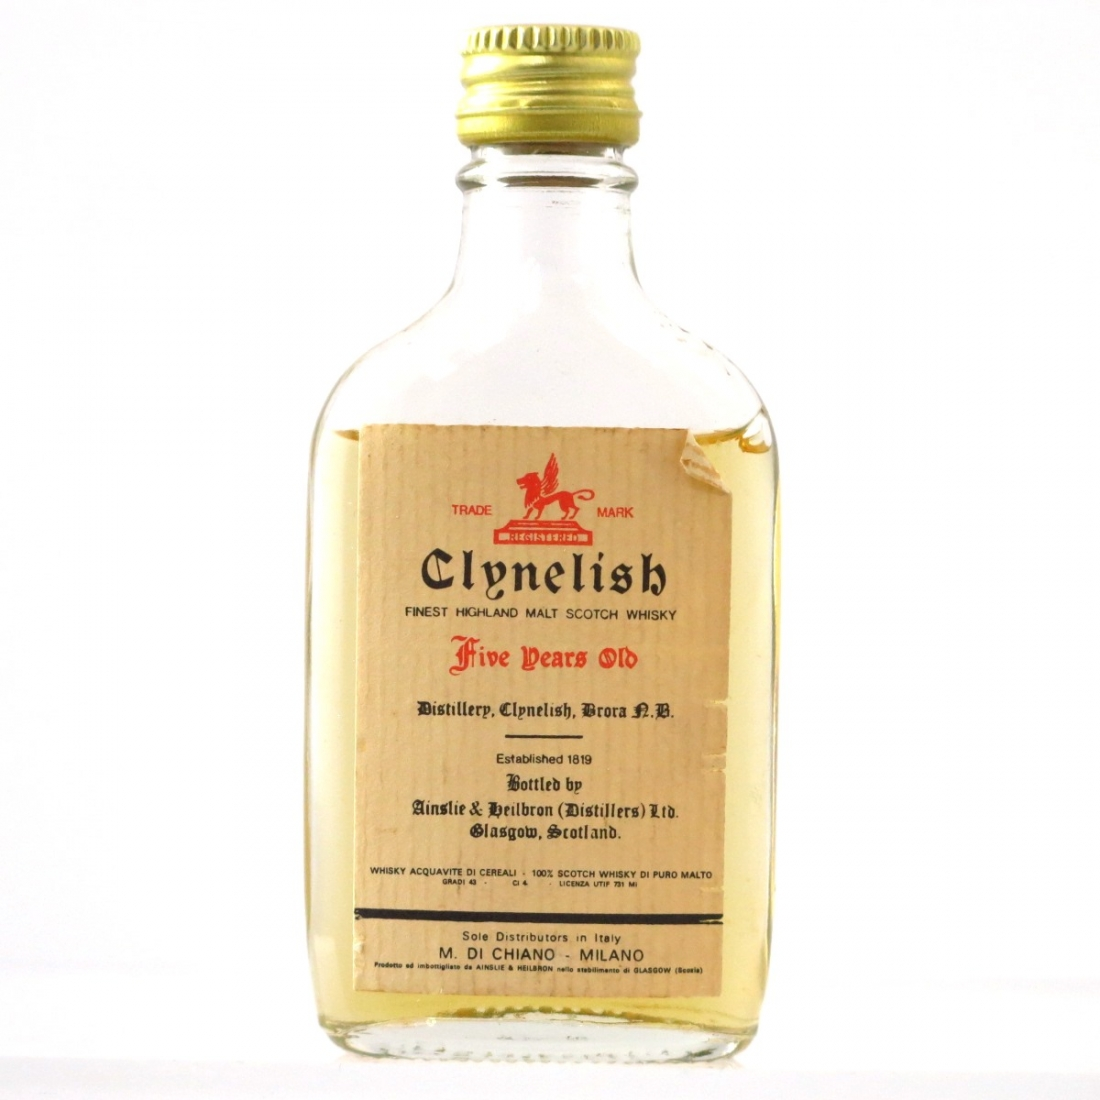 Clynelish 5 Year Old Ainslie and Heilbron Miniature Circa 1970s / Di Chiano Import